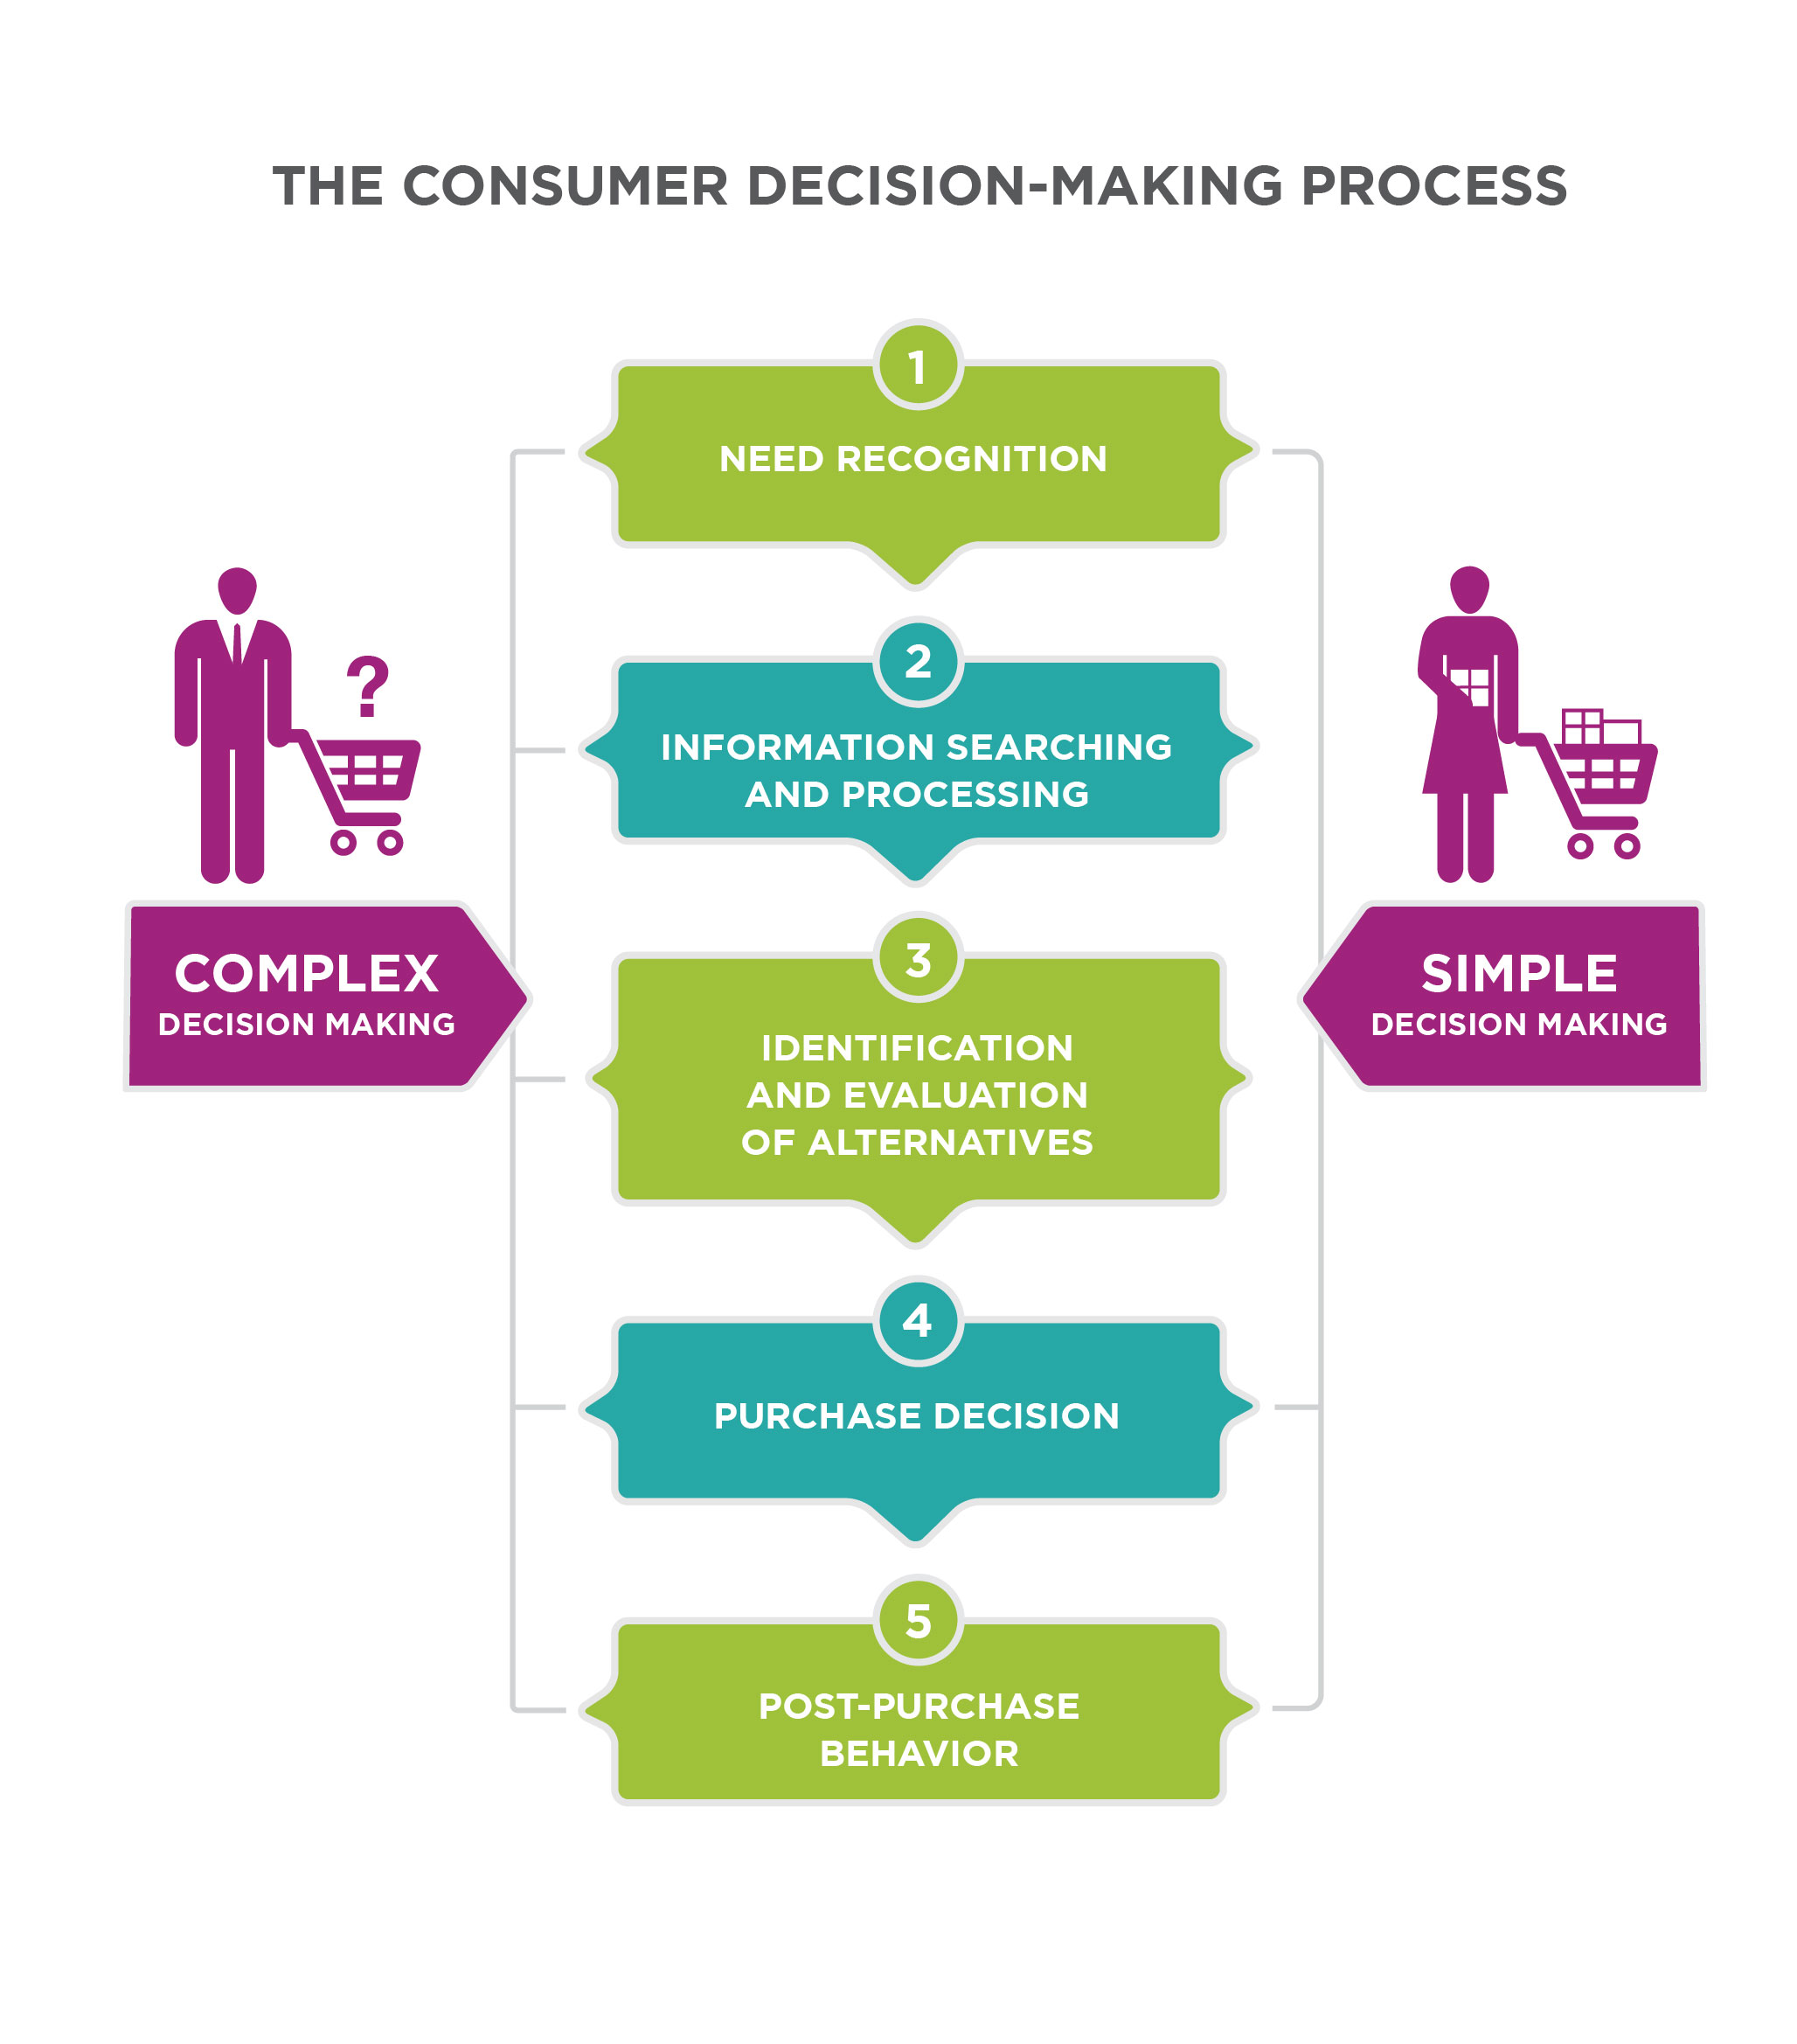 pepsi decision making process Read pepsico analysis free essay and over 88,000 other research documents pepsico analysis pepsico, inc katherine schryner mba5002 - microeconomics and decision-making james slate 03/09/08 i executive summary in1898, caleb bradham created the.